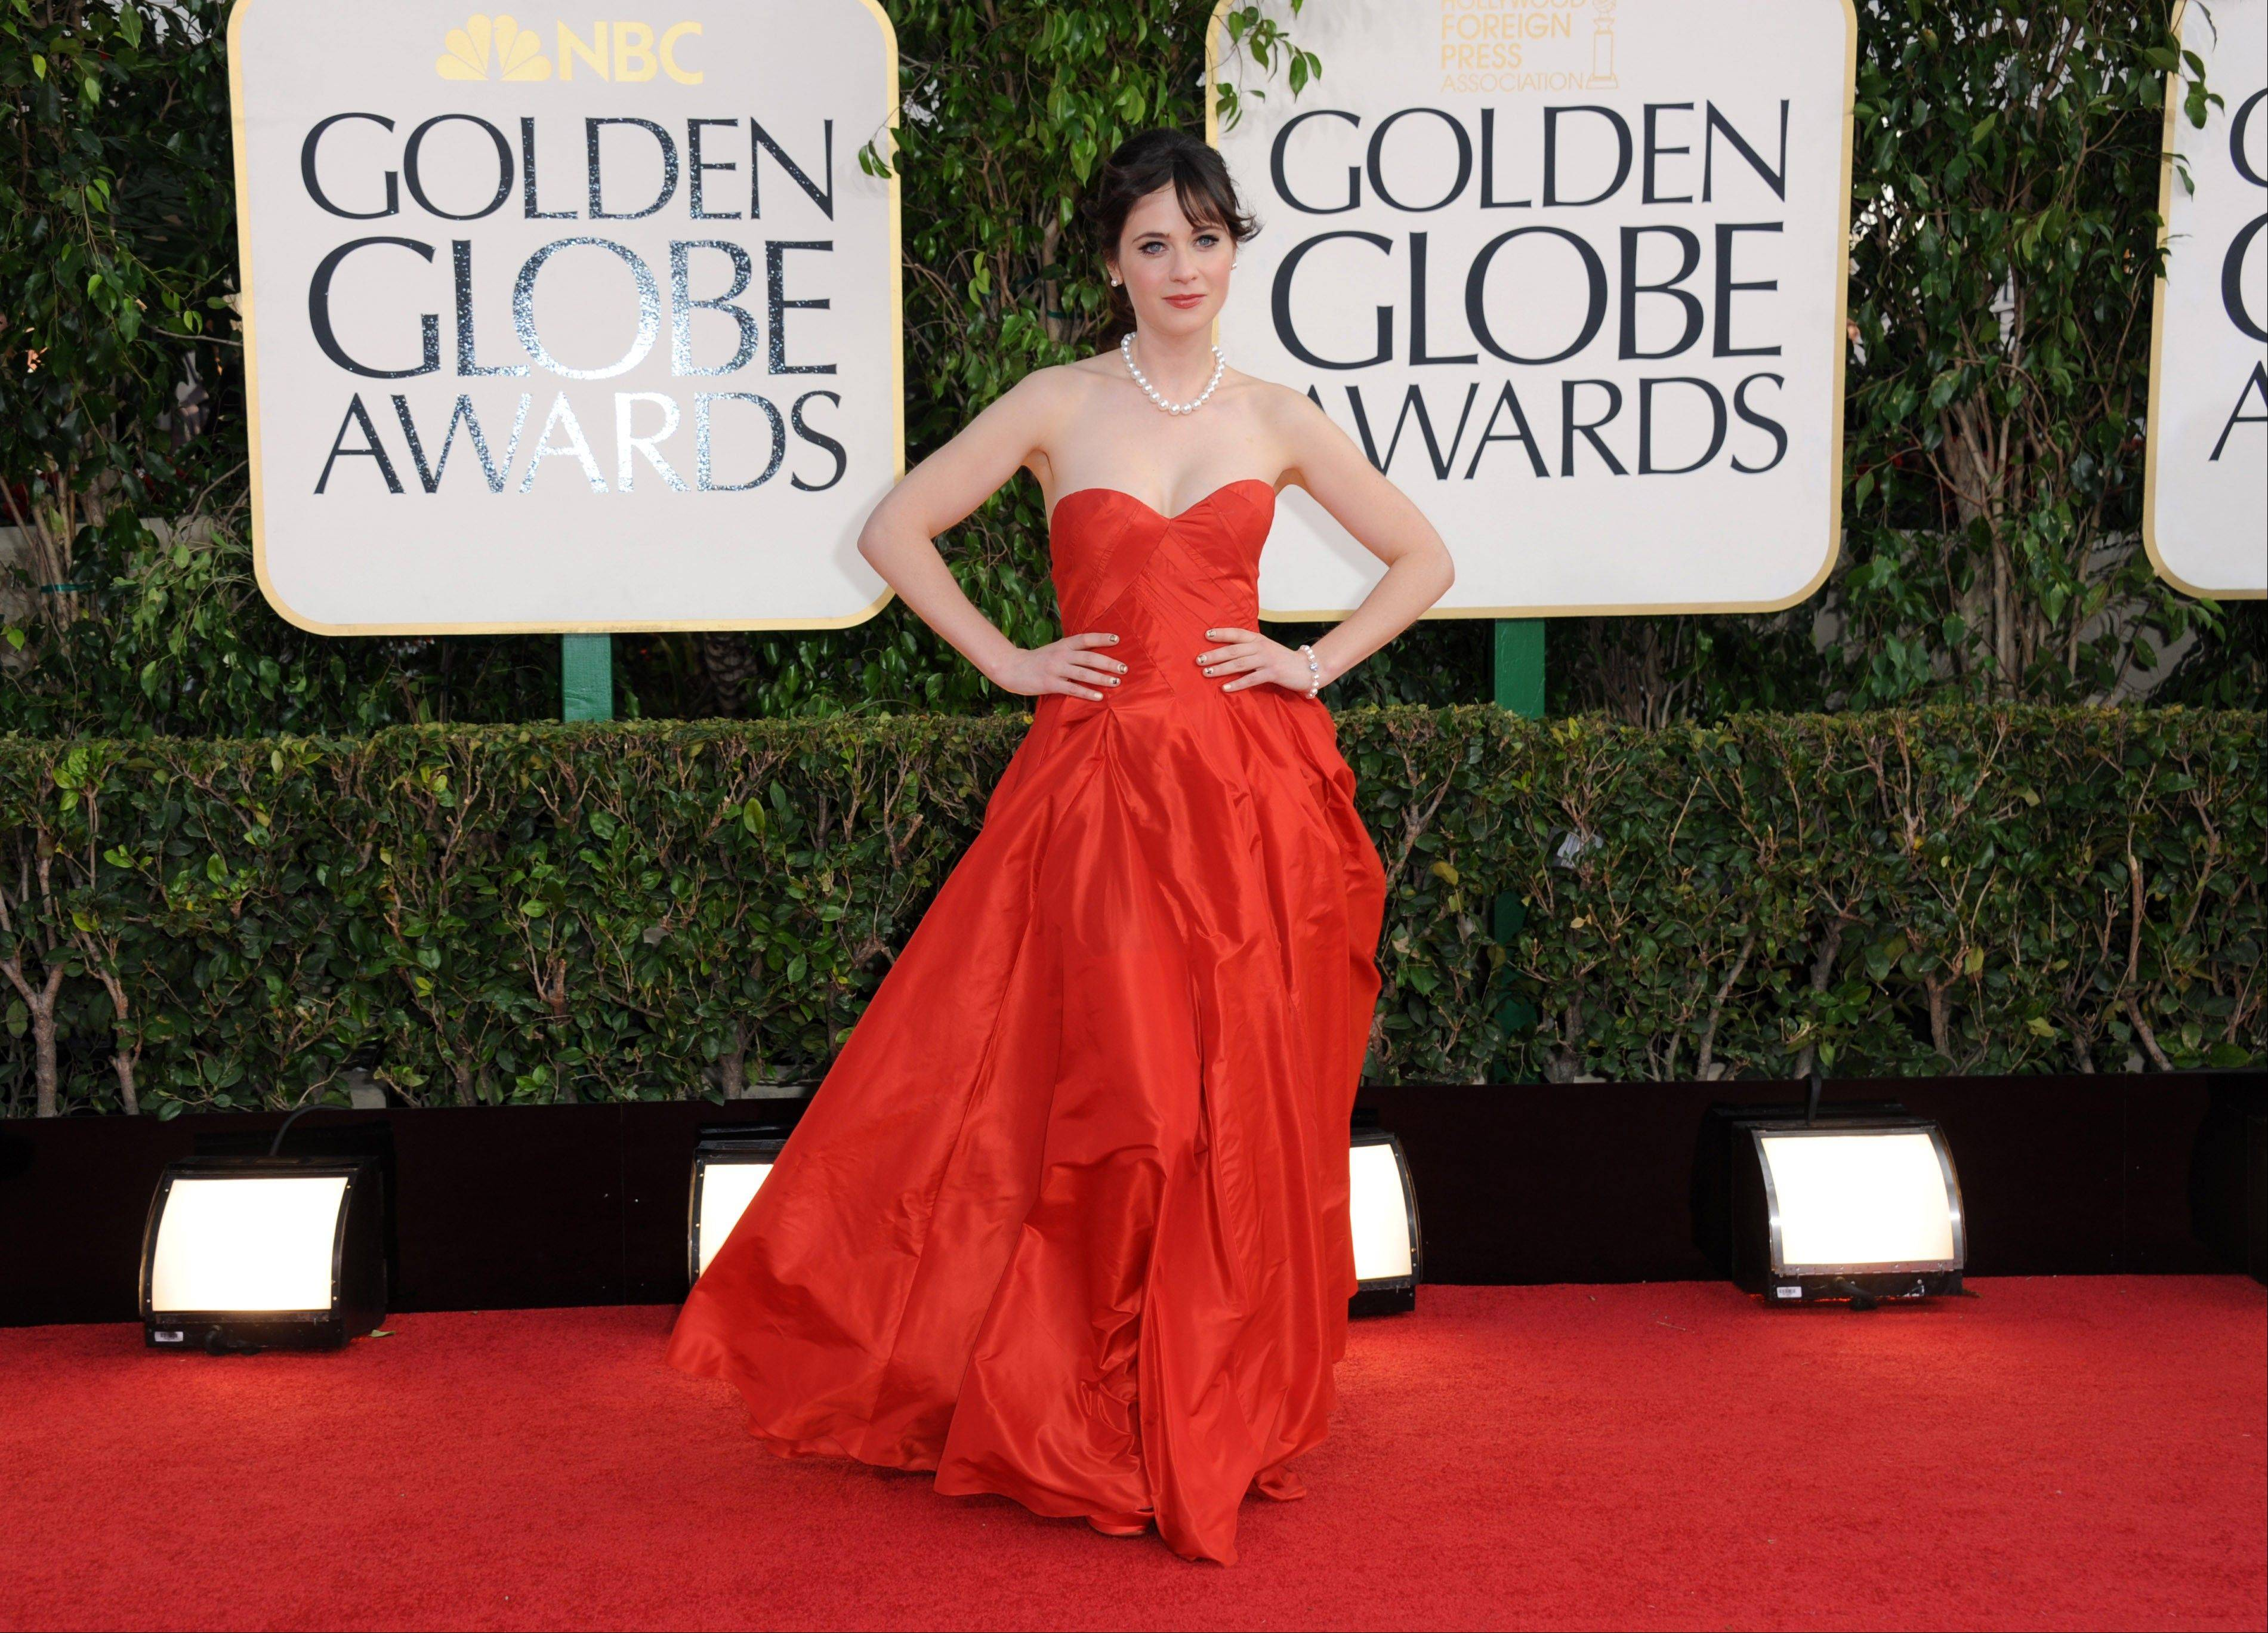 Actress Zooey Deschanel arrives at the 70th Annual Golden Globe Awards at the Beverly Hilton Hotel on Sunday Jan. 13, 2013, in Beverly Hills, Calif.